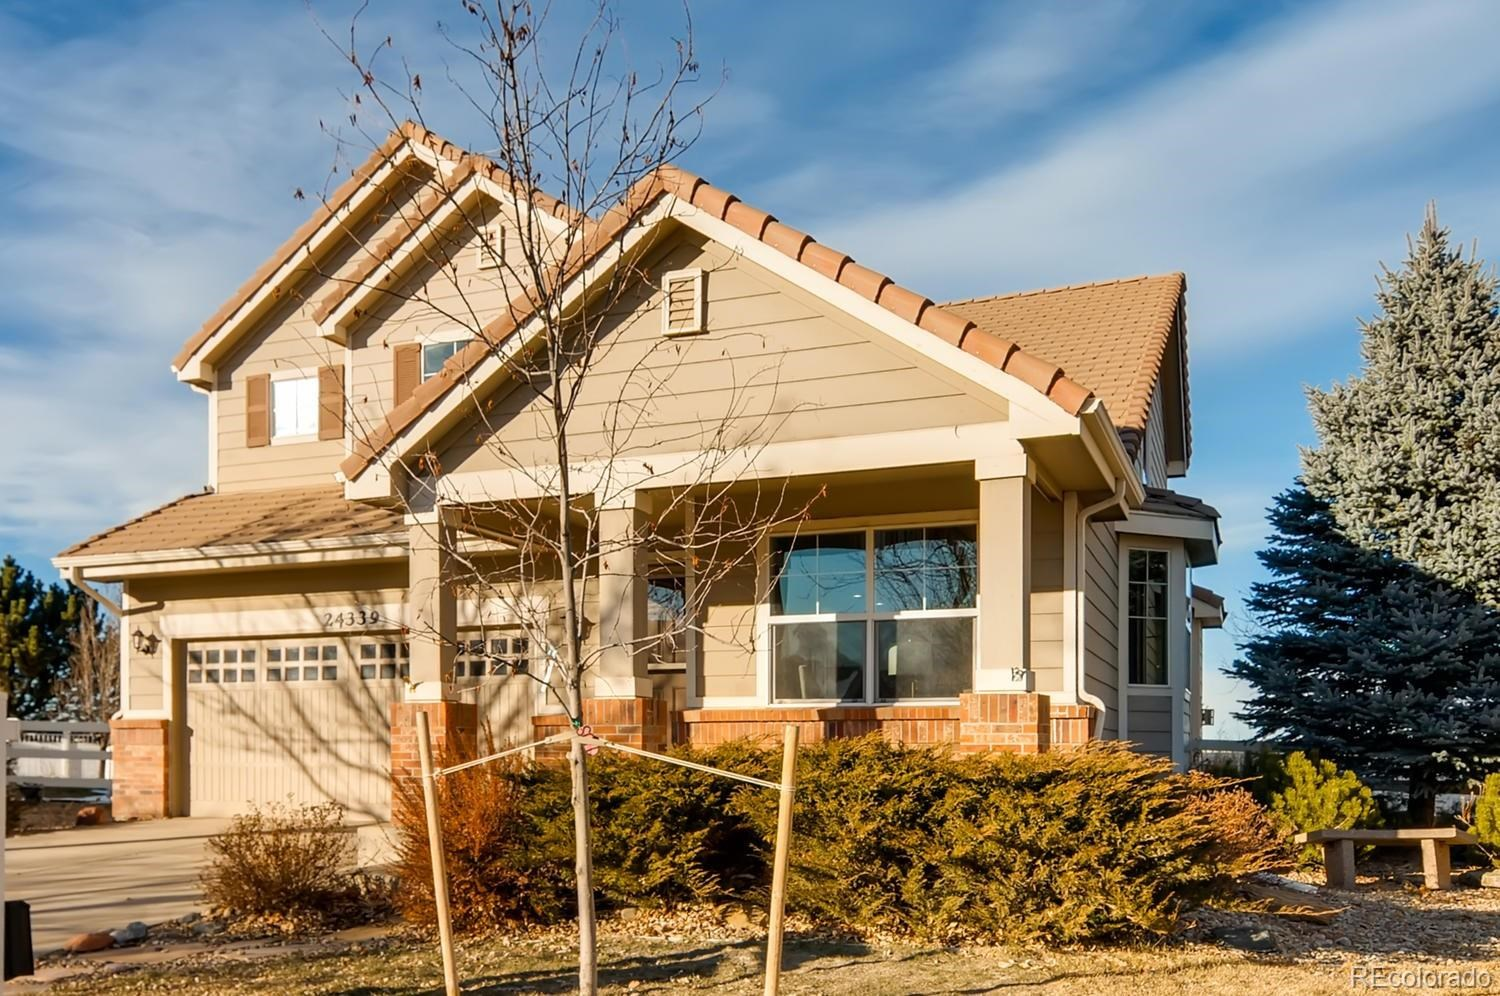 MLS# 4655945 - 2 - 24339 E Kansas Circle, Aurora, CO 80018